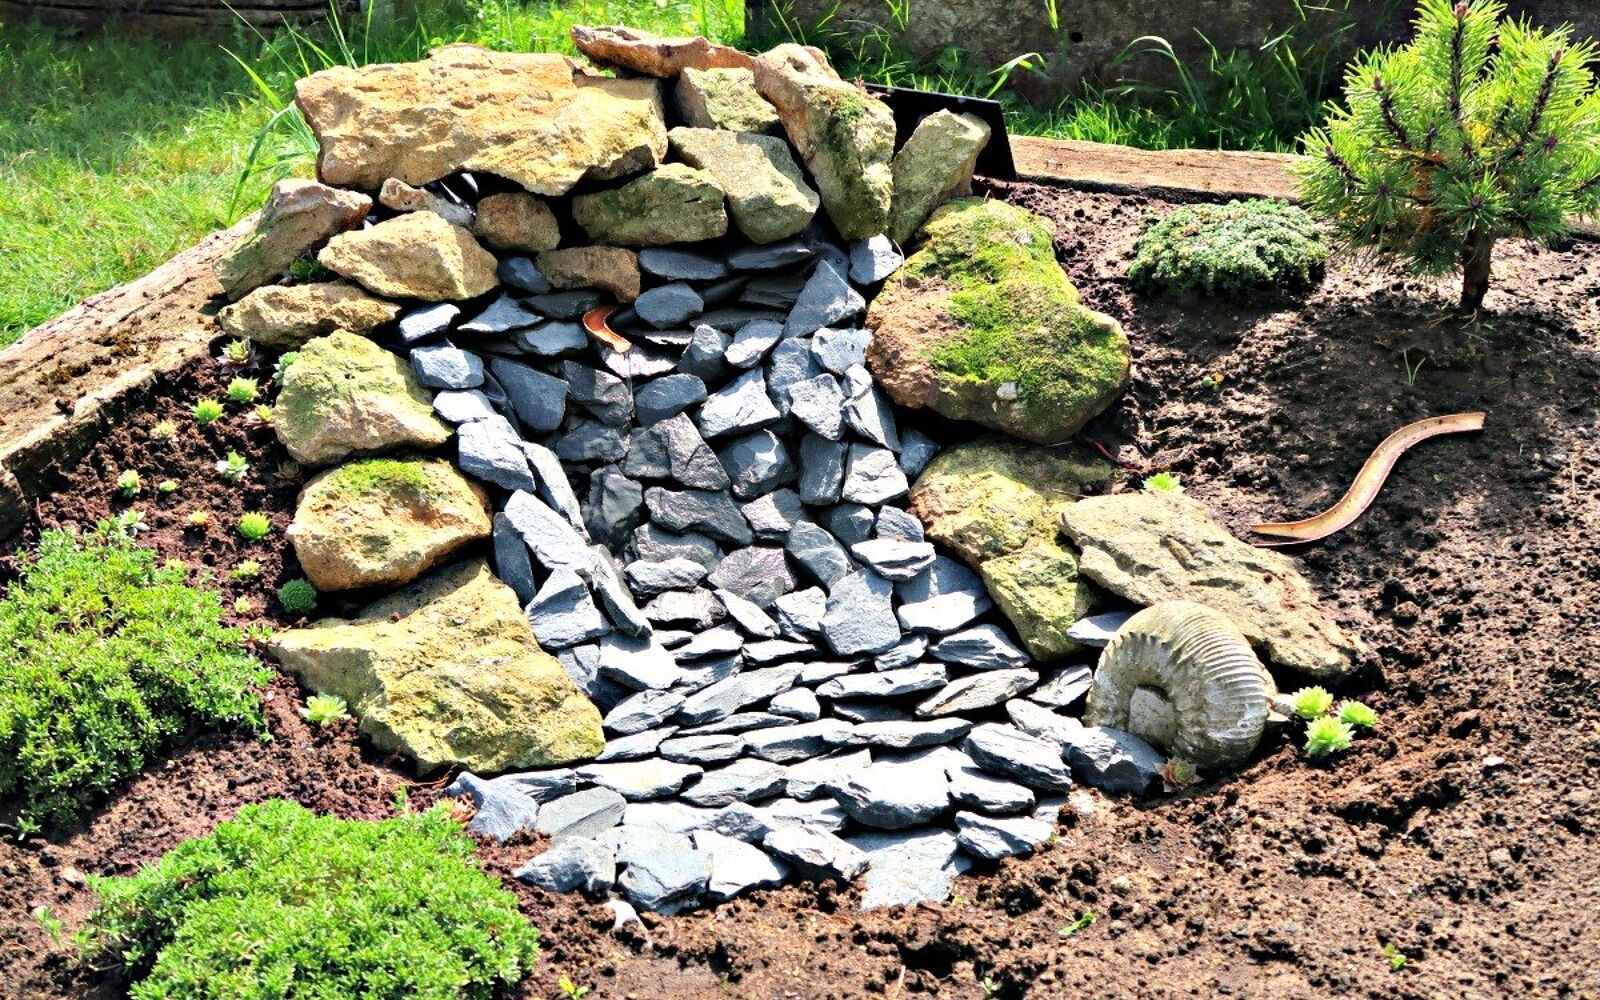 s upgrade your backyard with these 30 clever ideas, Build a solar powered waterfall